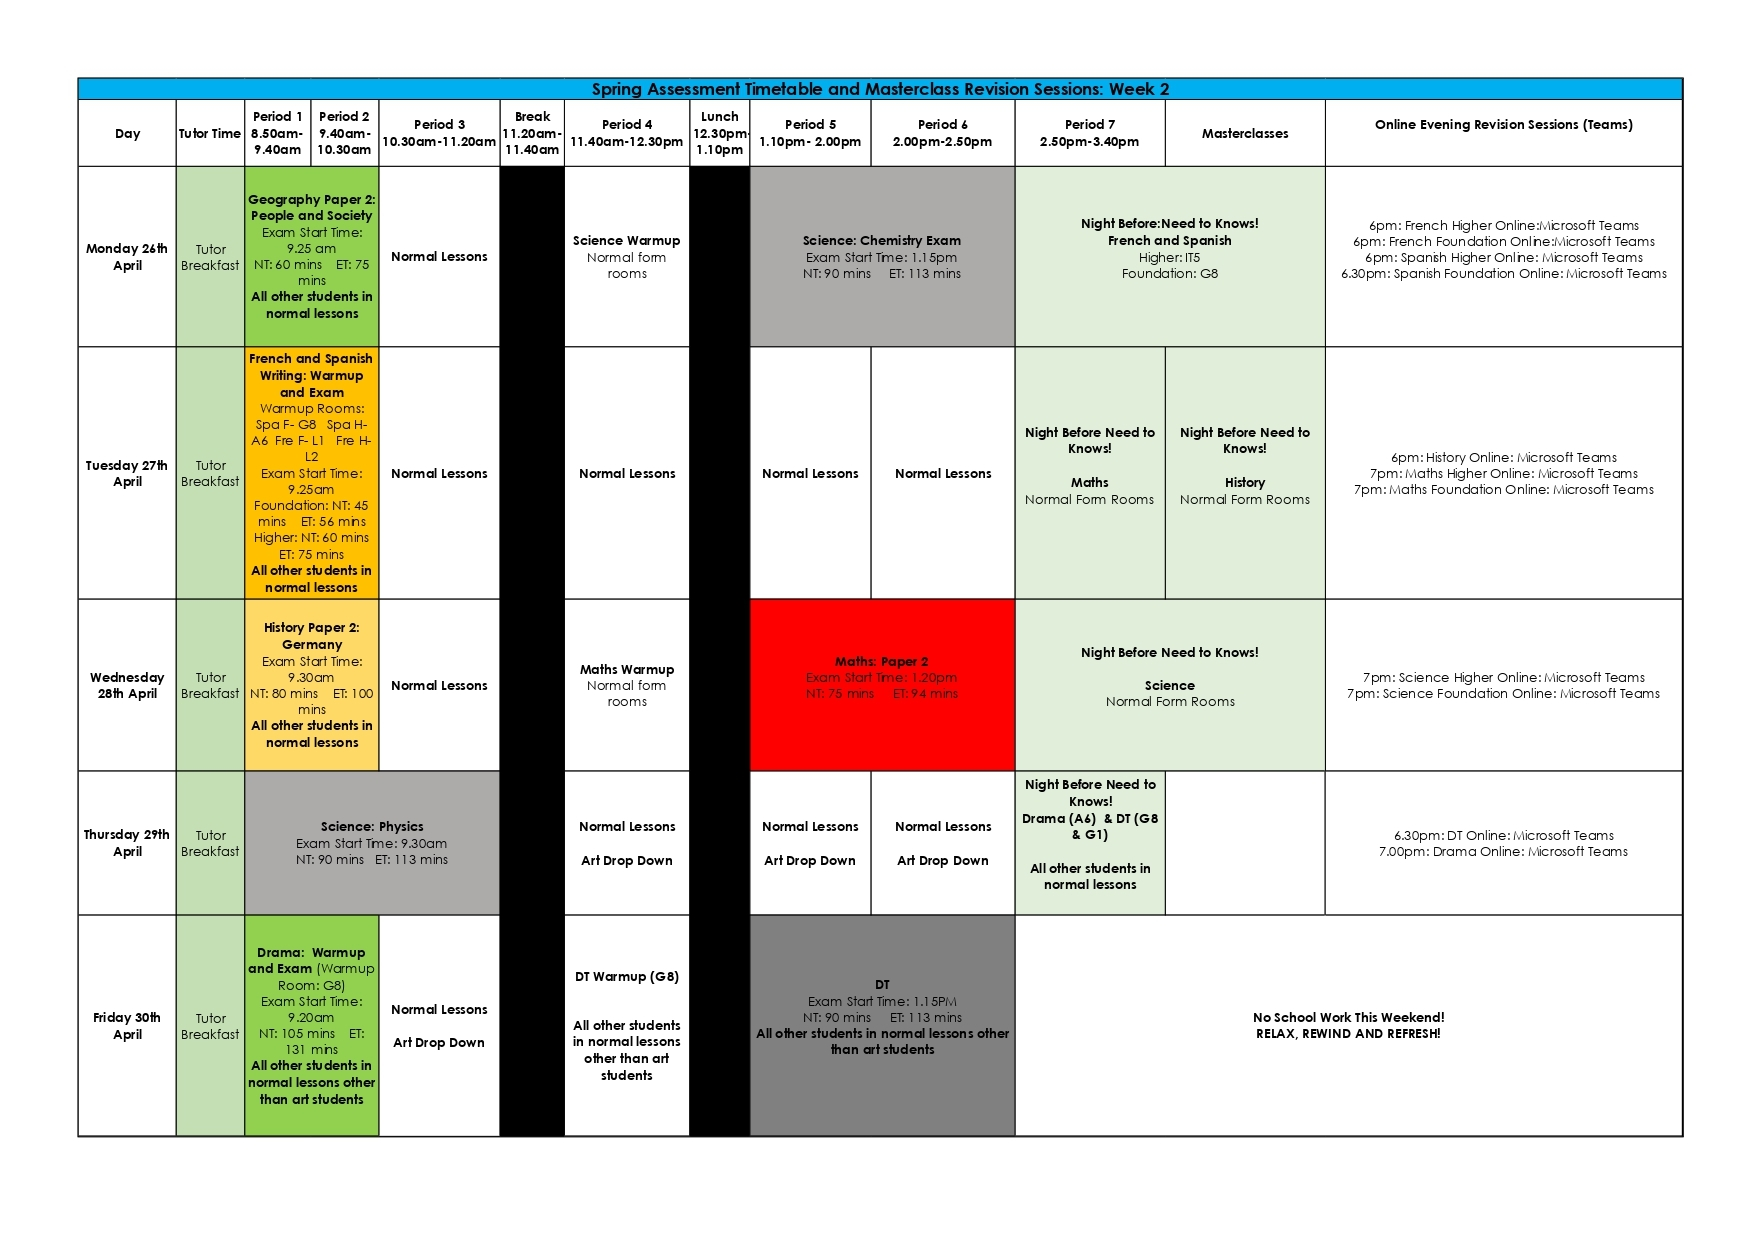 Week 2 spring assessment timetable and masterclass revisions sessions